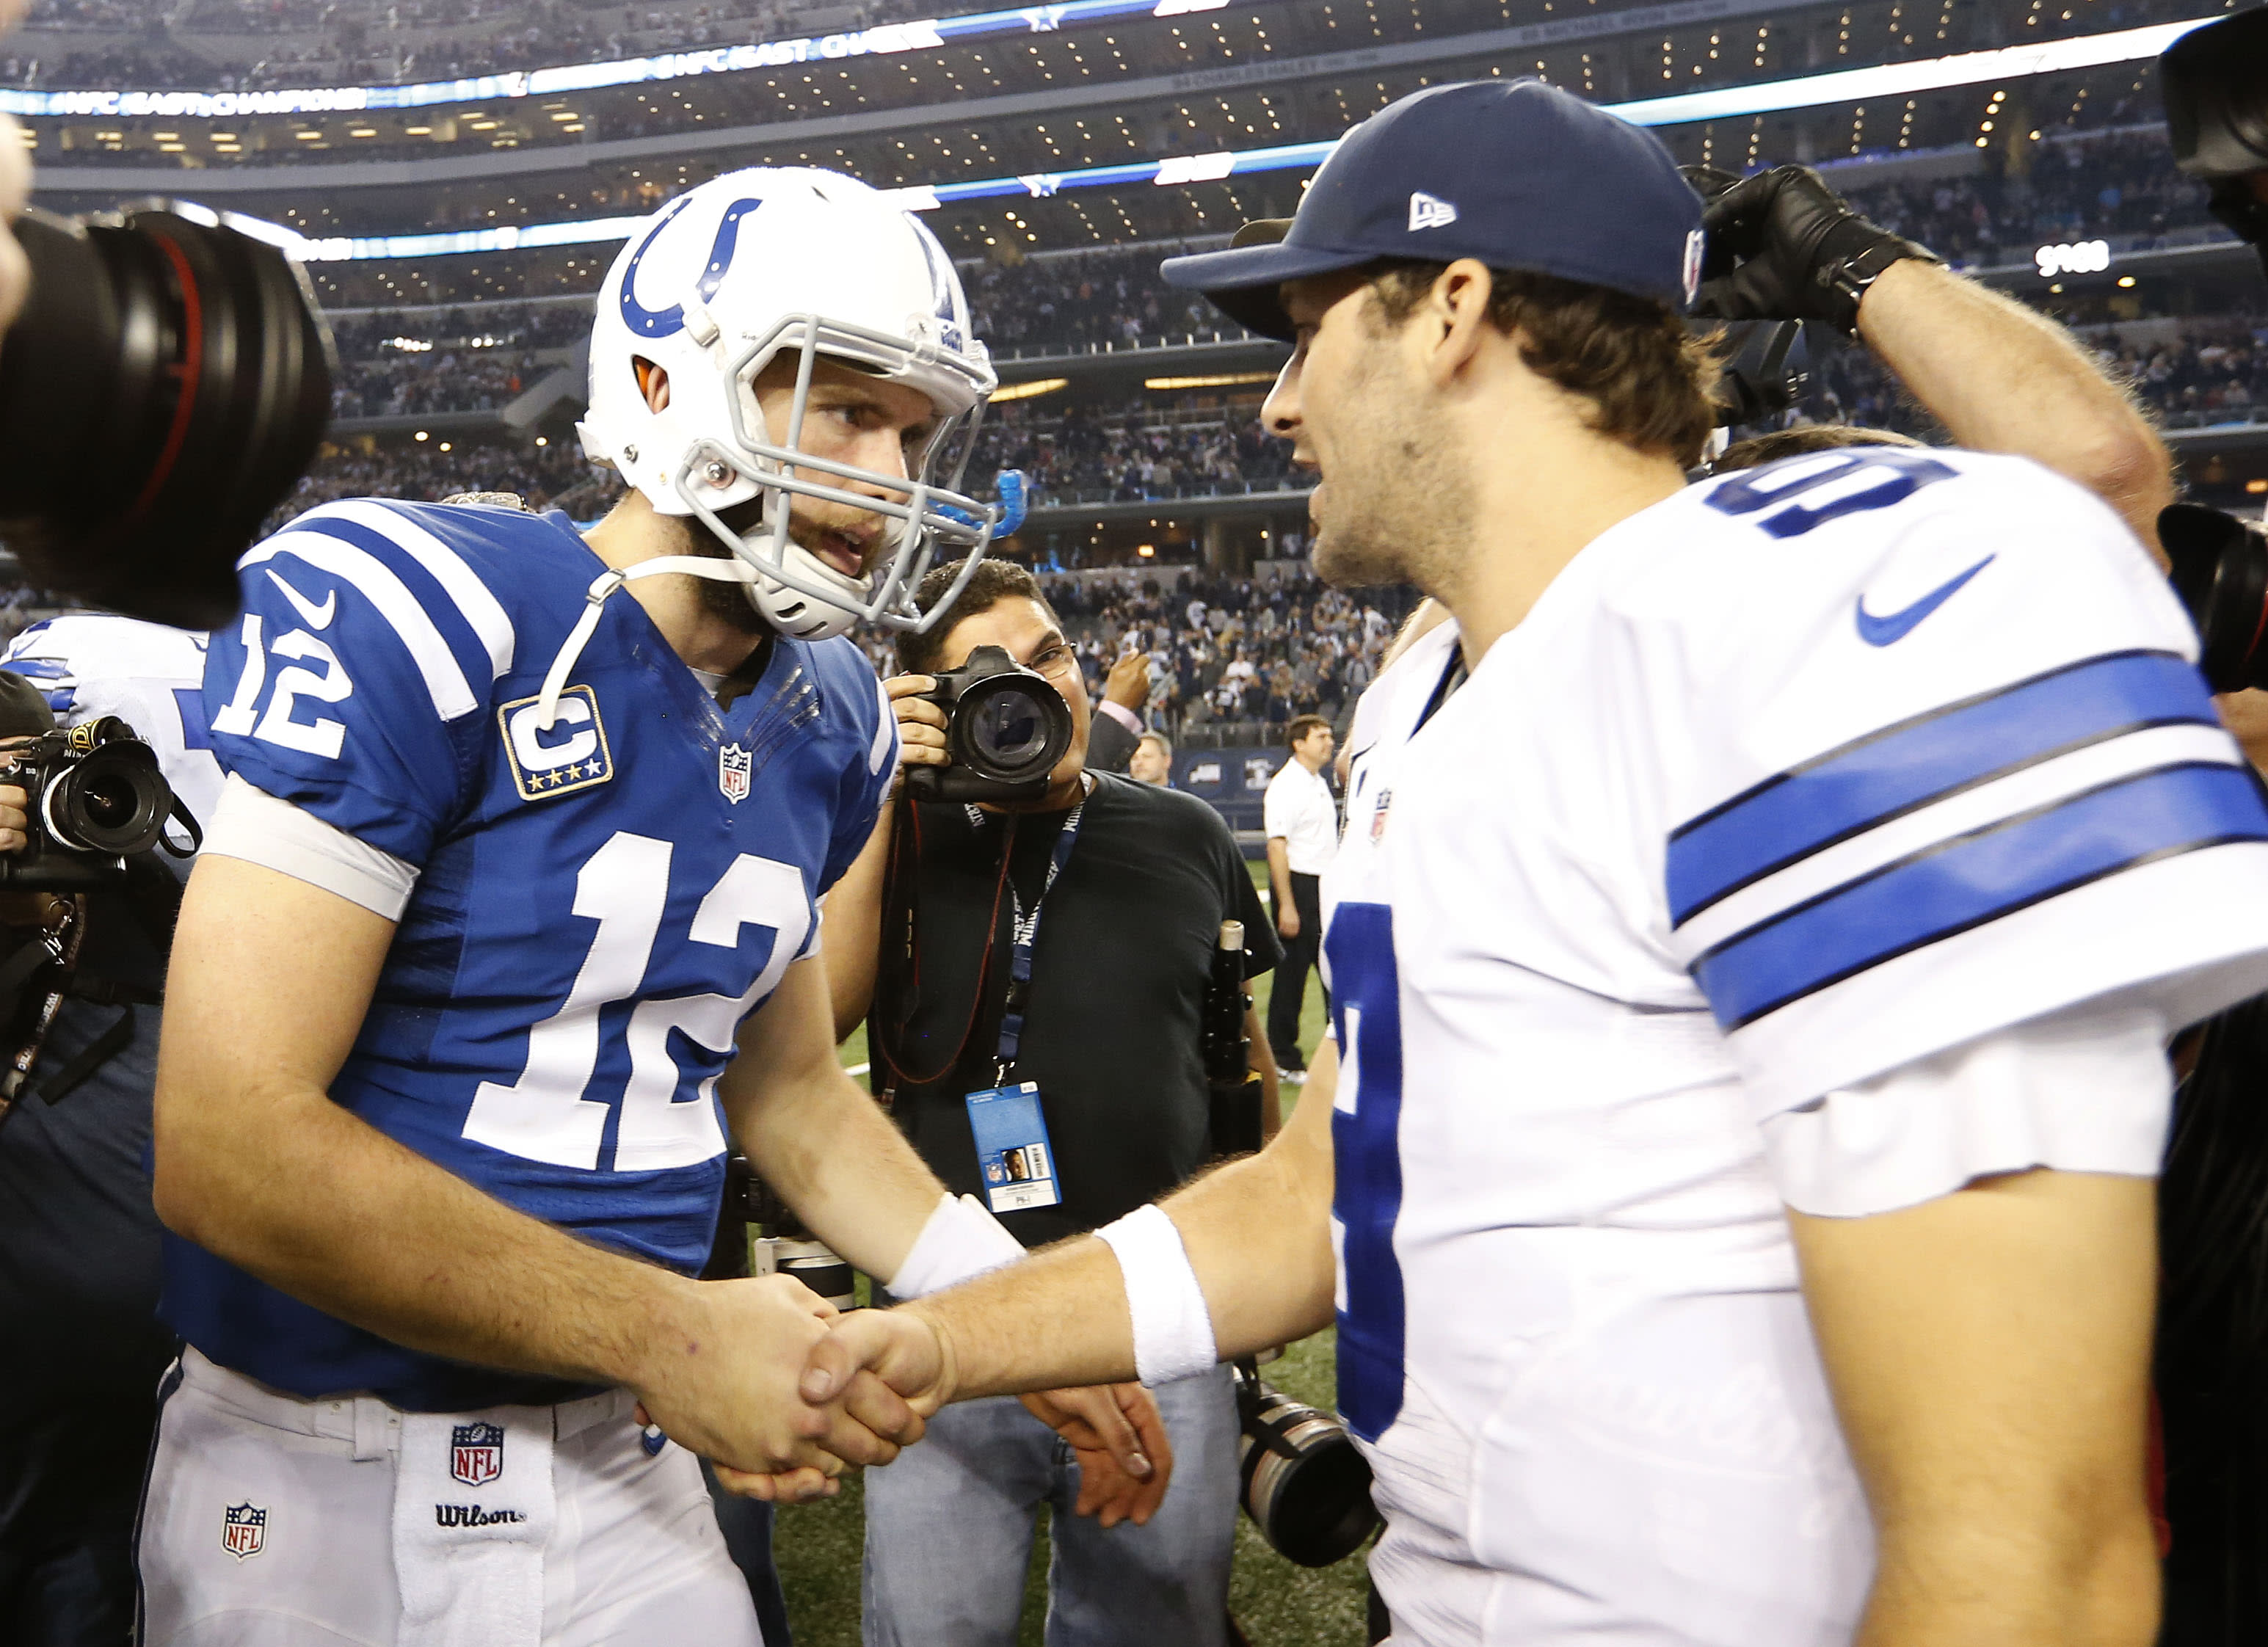 Mostly NFL Notes: Talking Tony Romo and a look around the league in Week 16